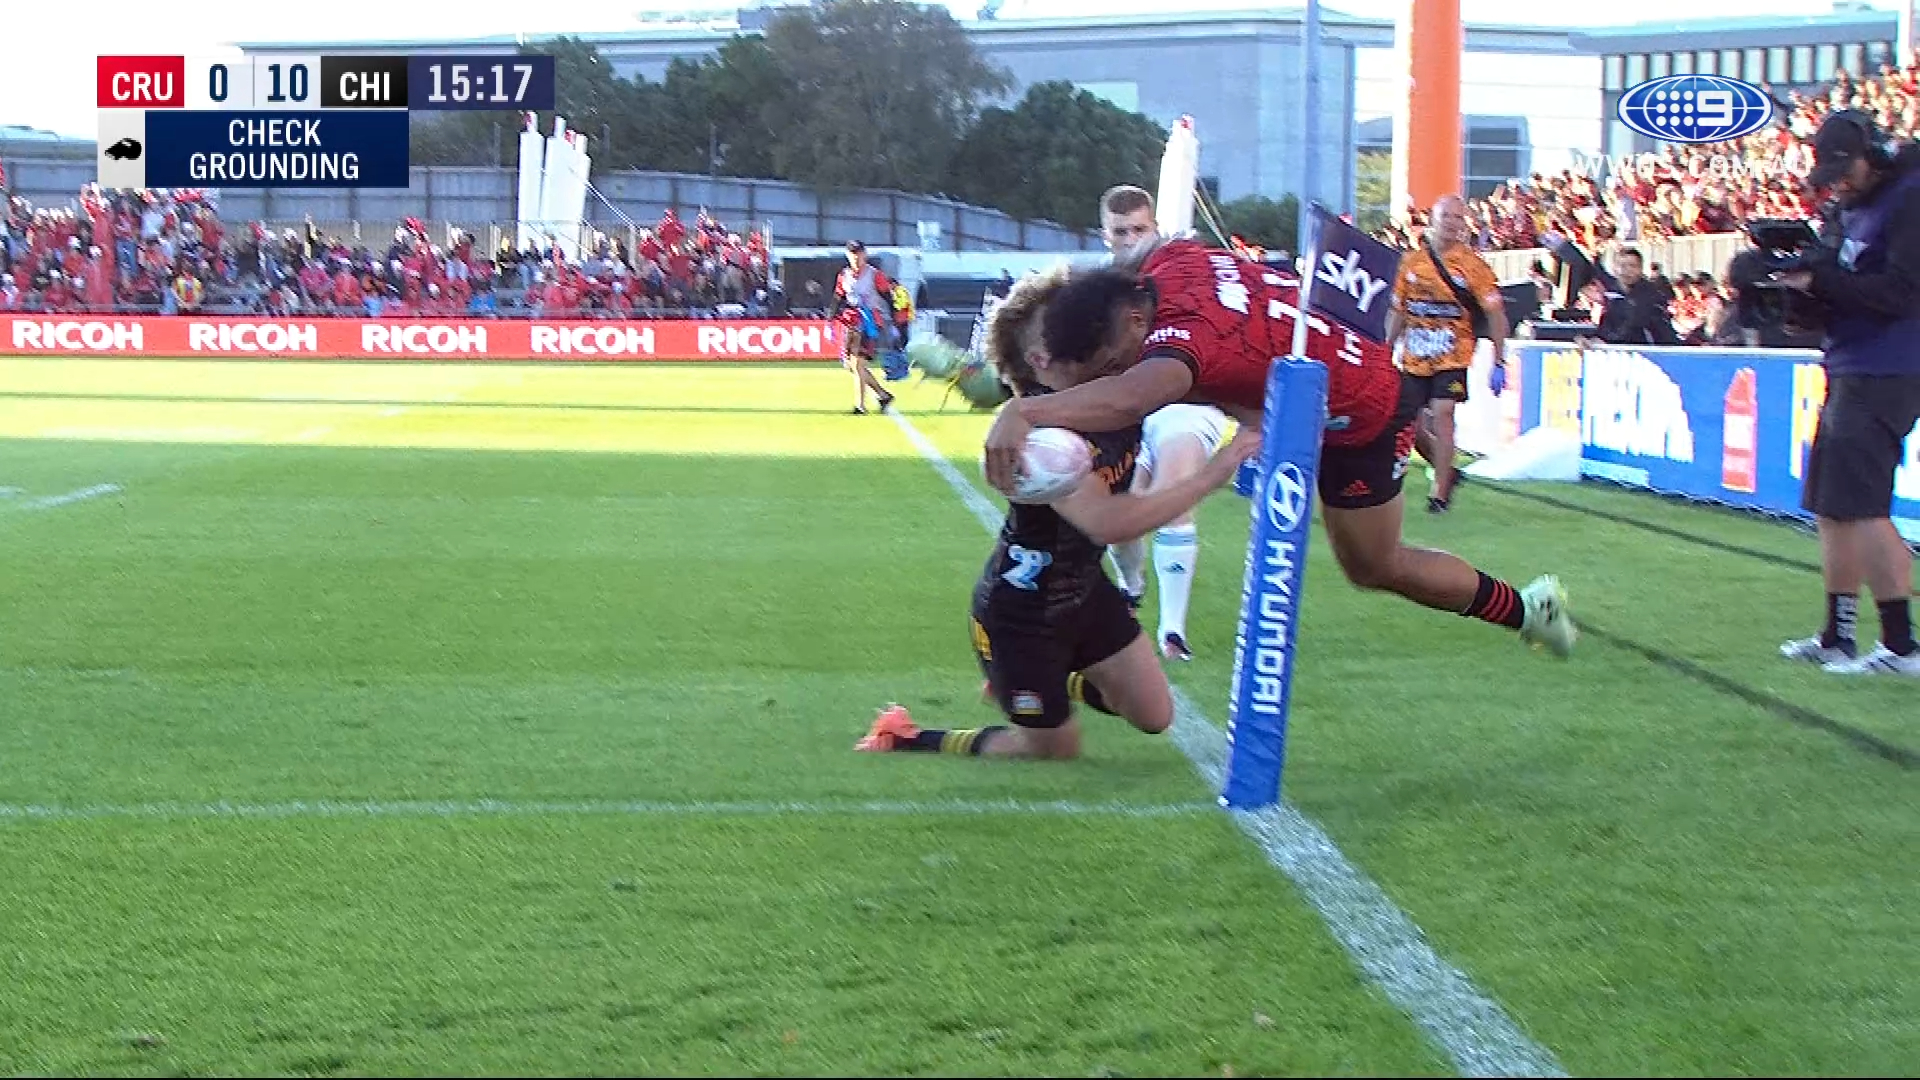 Freakish finish from Crusaders winger